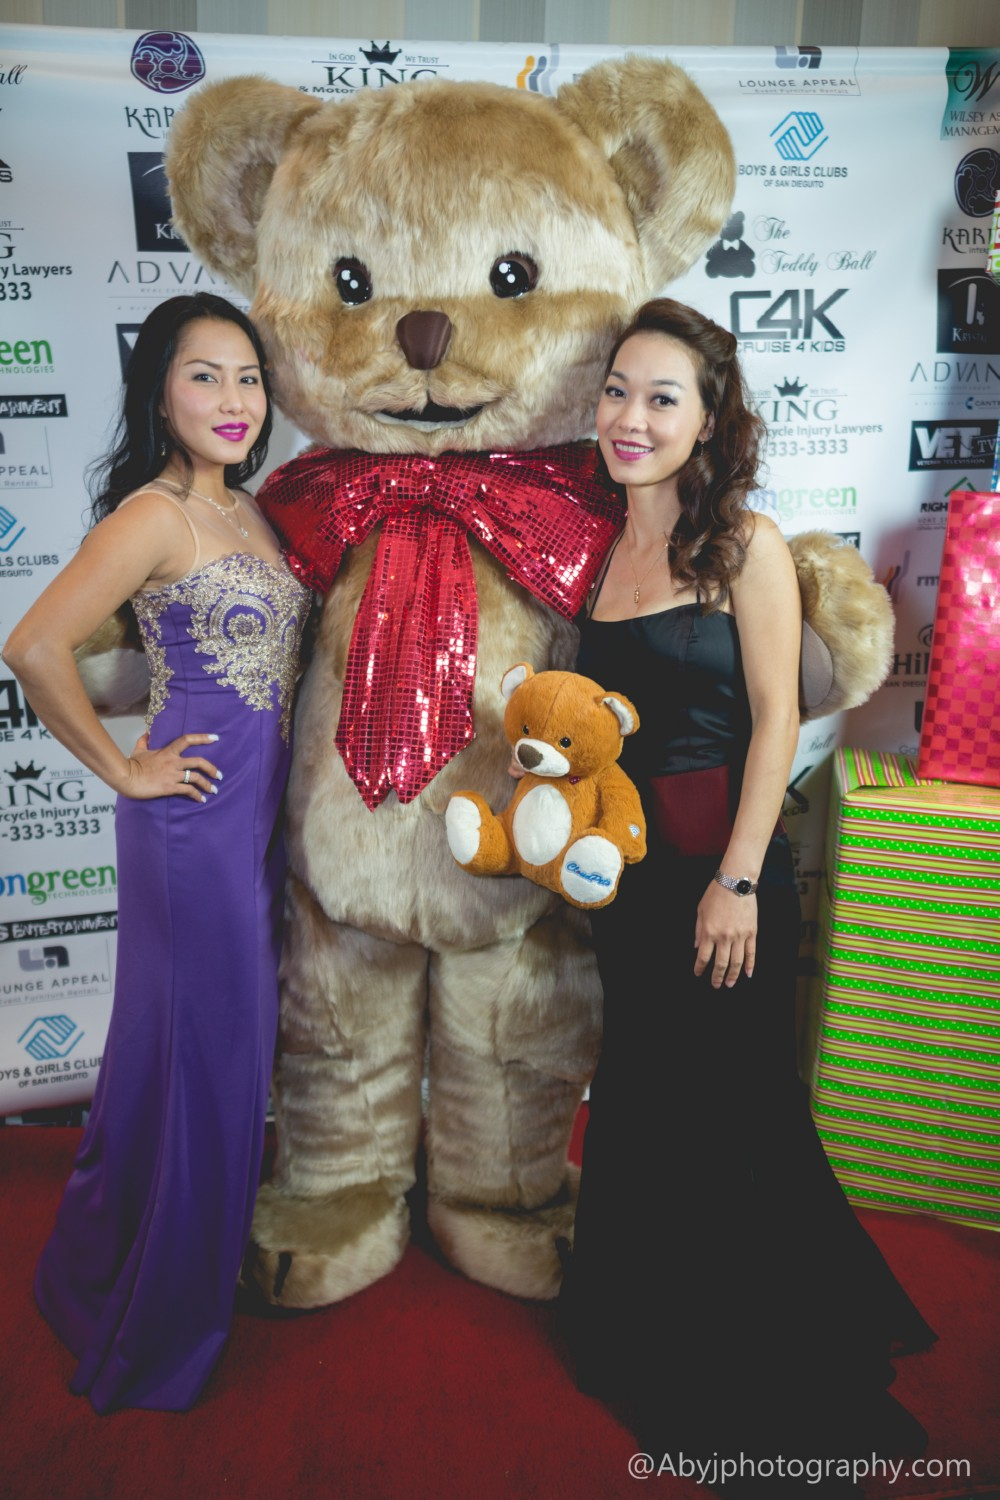 ABYJ_Photography_2016_Teddy_Ball - 164.jpg